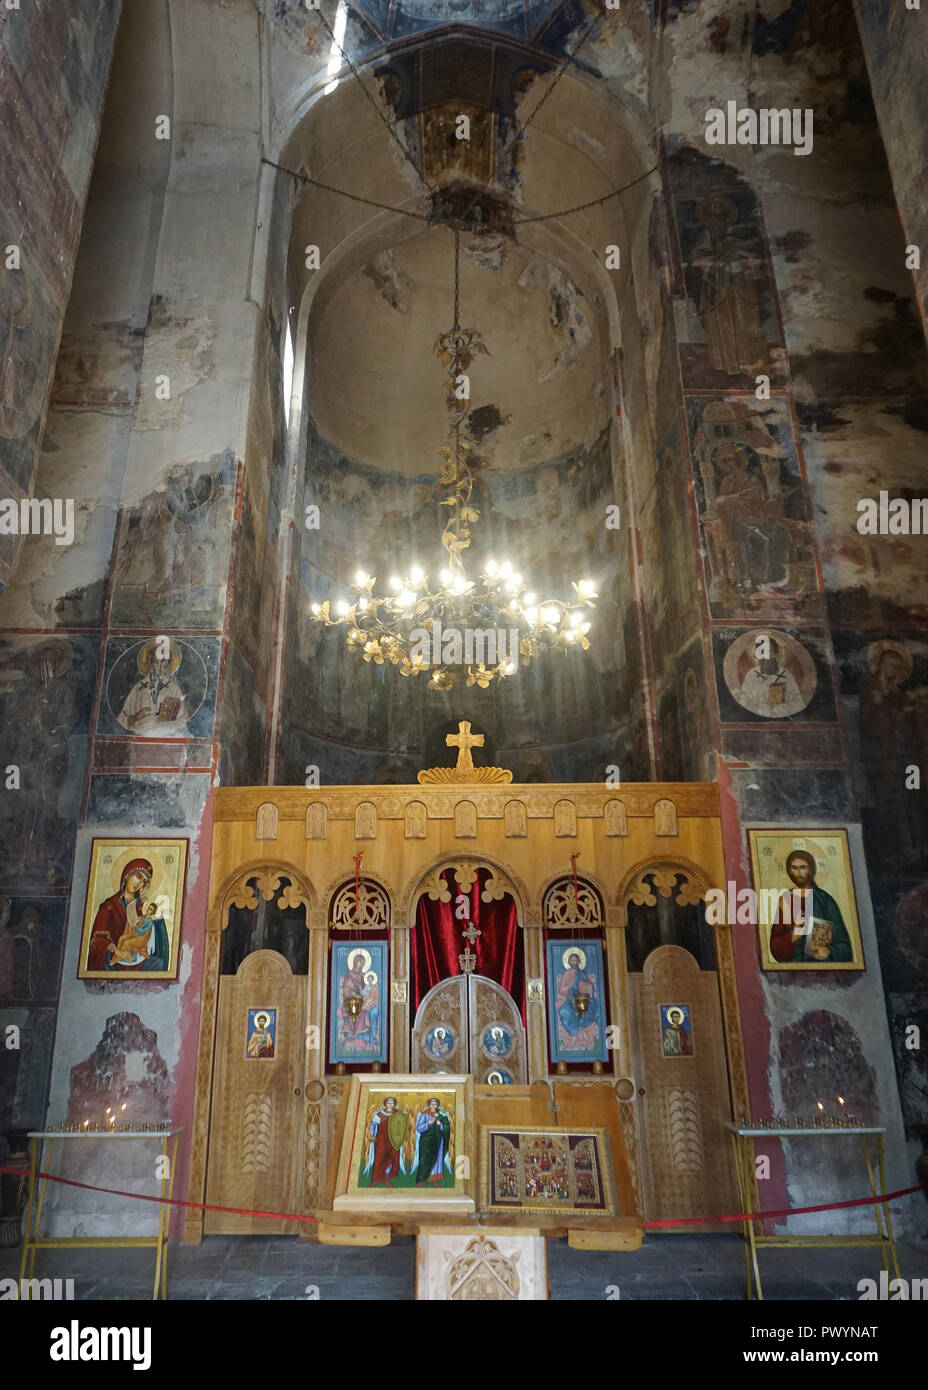 Gremi Monastery Castle Church Iconostasis in Altar with Icons and Frescoes - Stock Image